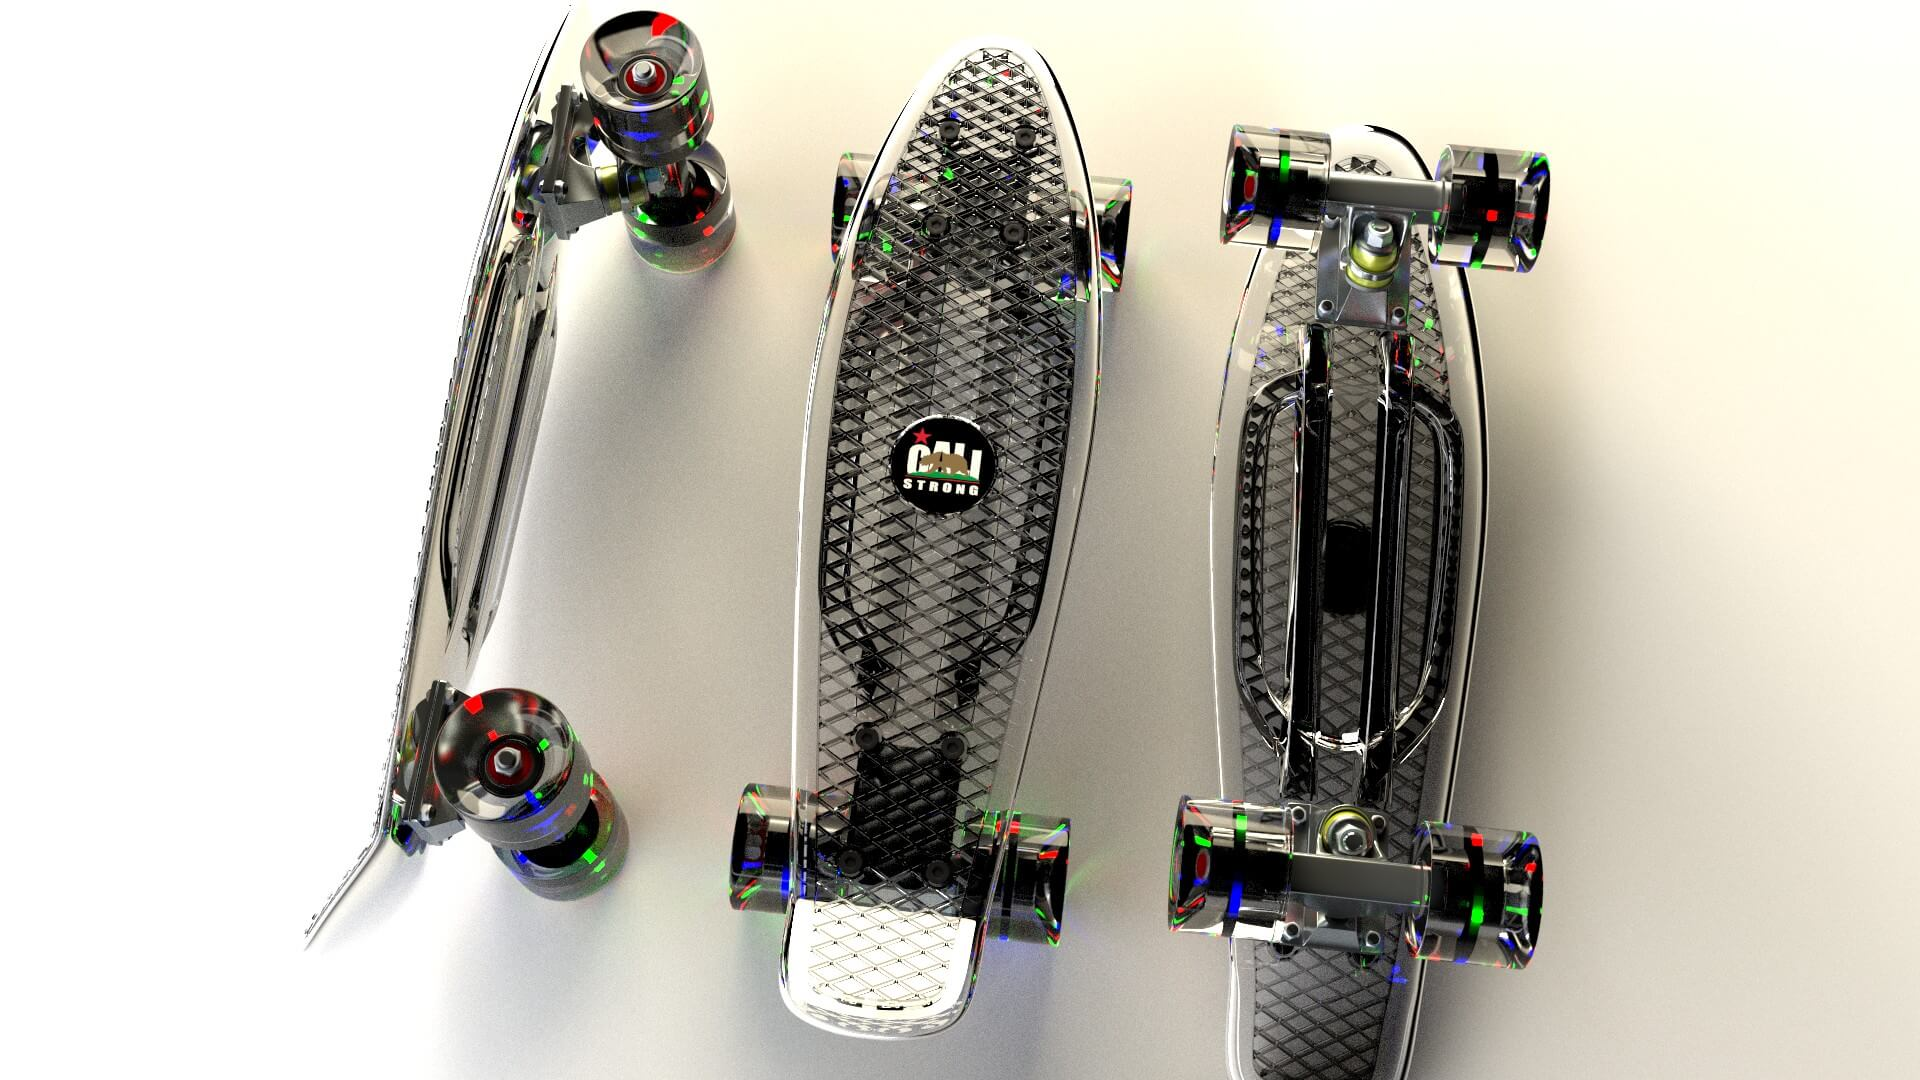 CALI Strong Crystal Clear Banana Board With LED Light Wheels